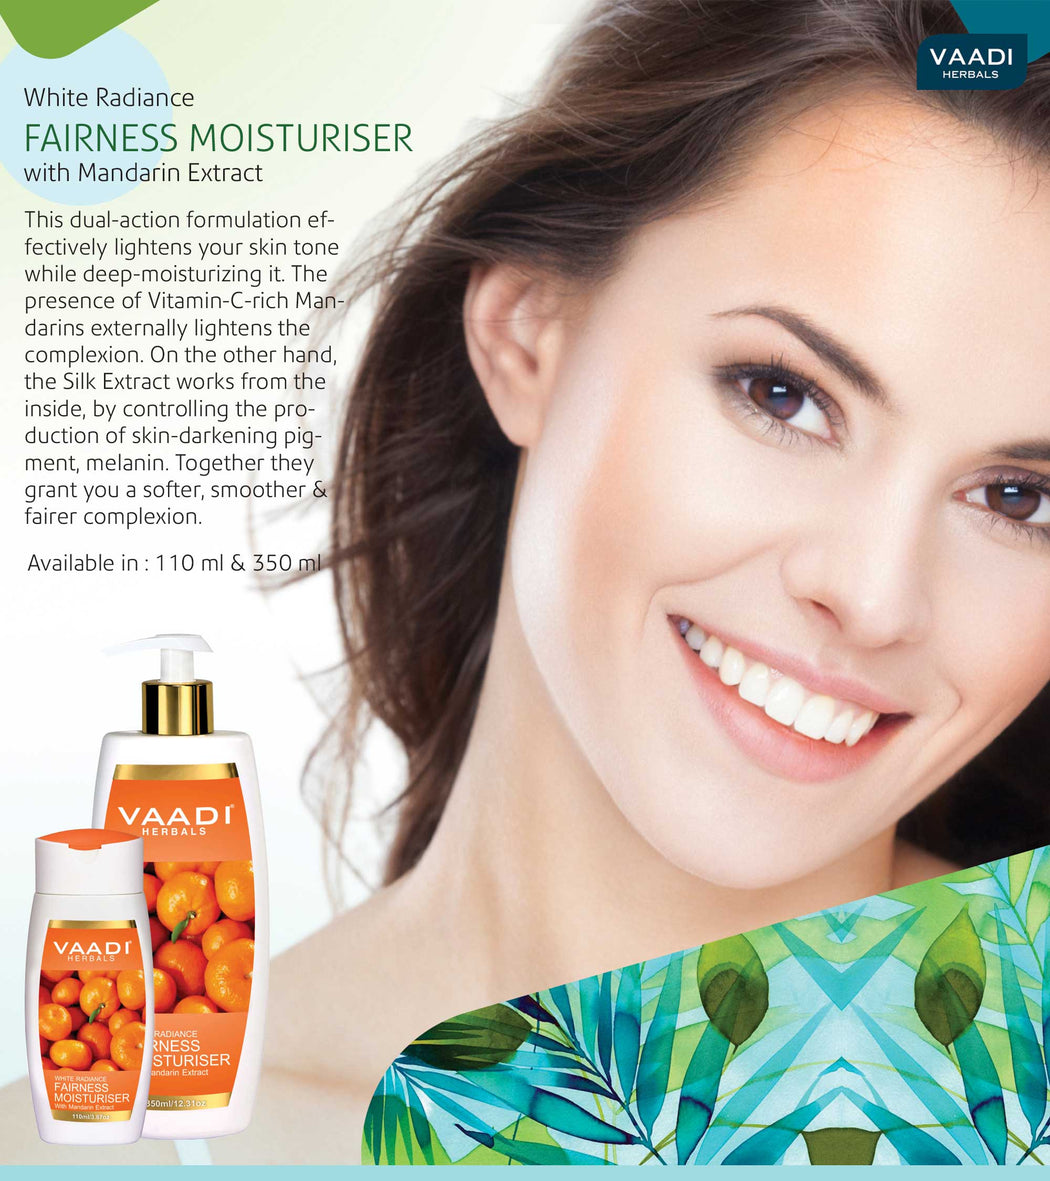 Pack of 3 Fairness Moisturiser with Mandarin Extract (110 ml x 3)